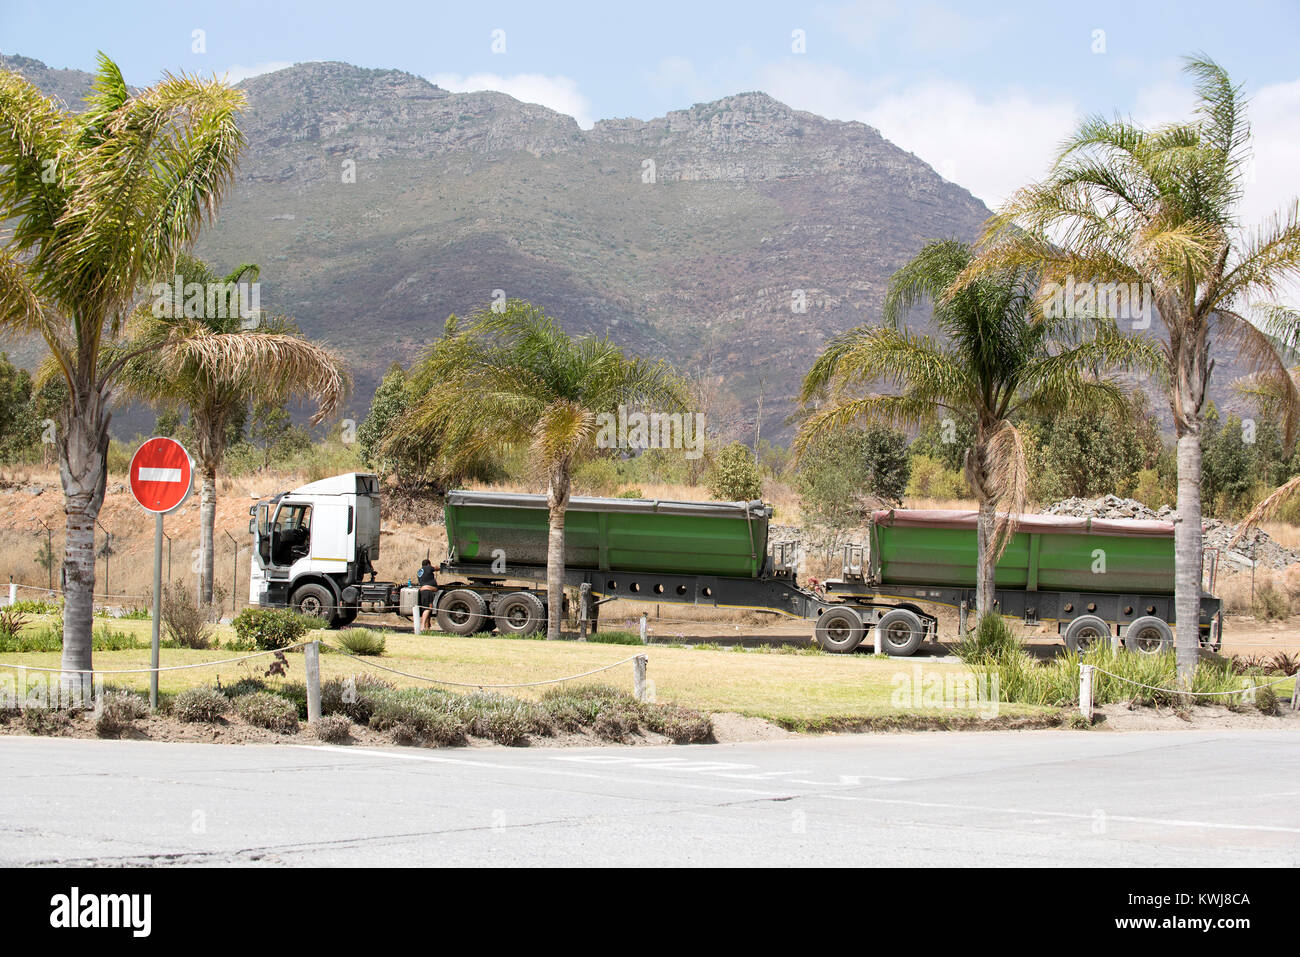 Riebeek West Western Cape South Africa. December 2017. Haulage truck carrying a load of cement being checked by - Stock Image